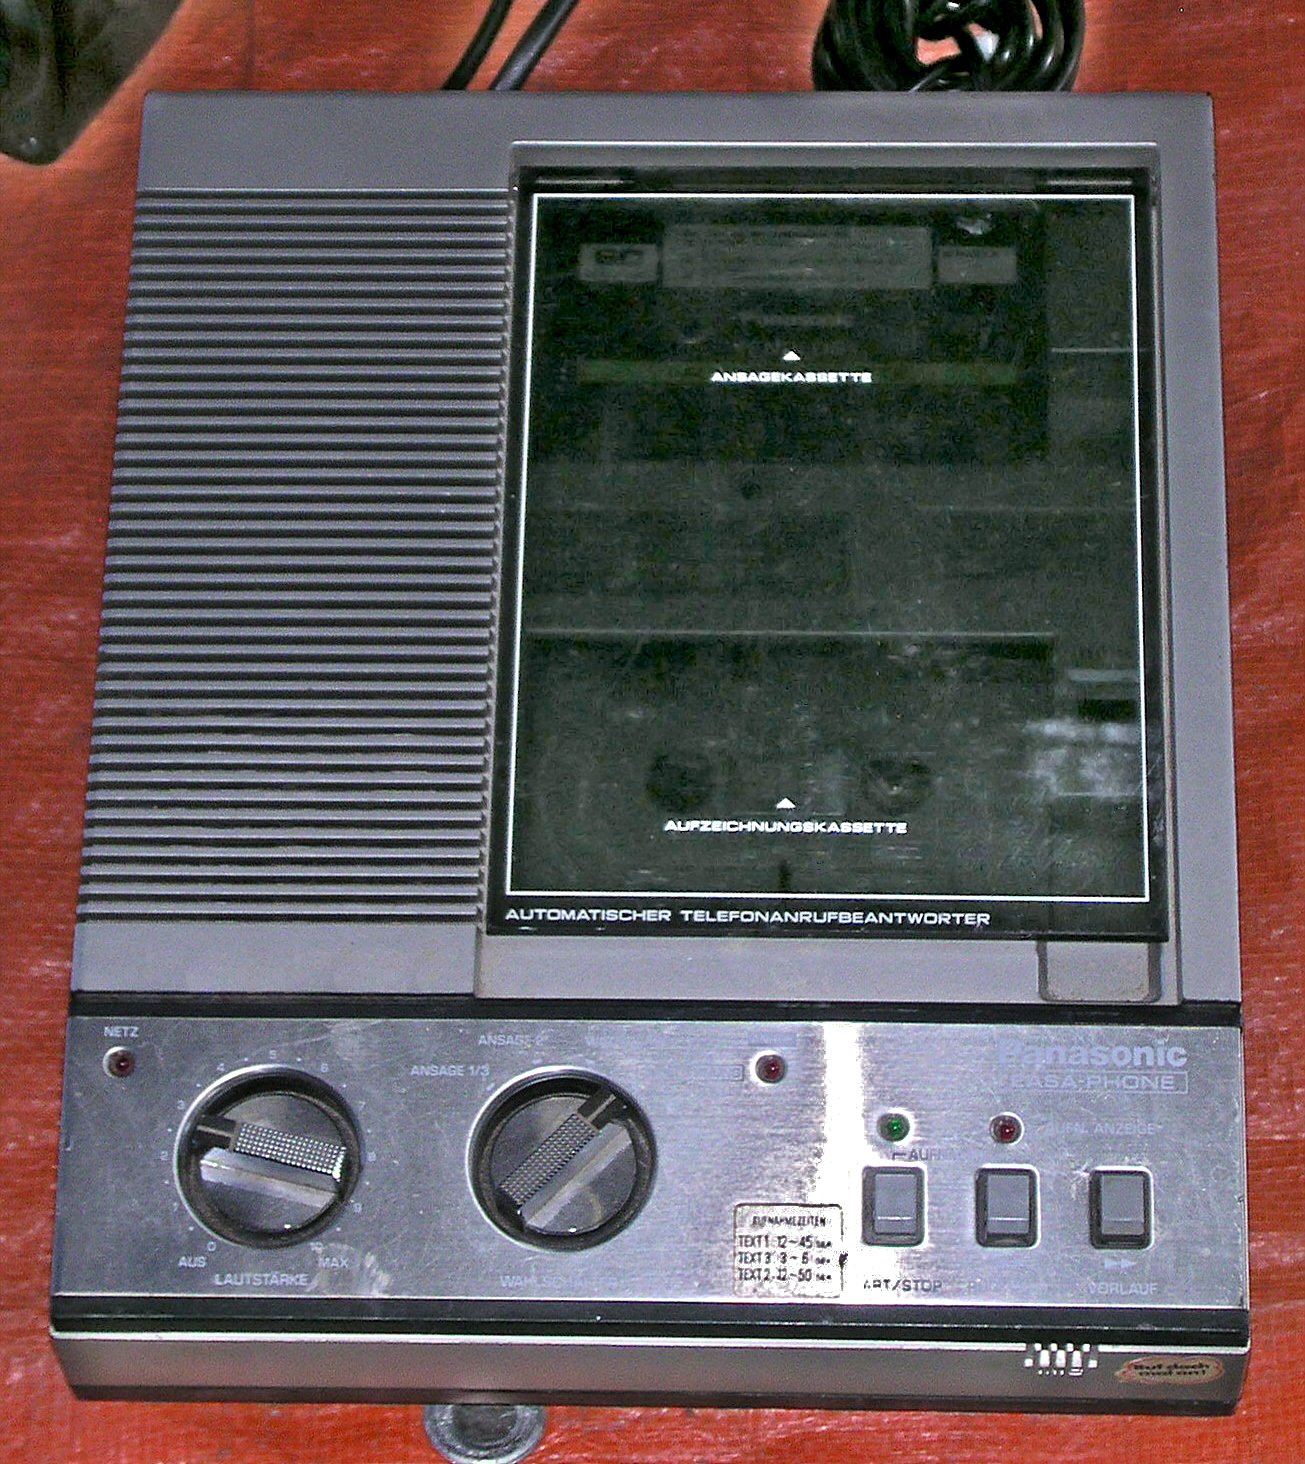 Answering machine - Wikipedia